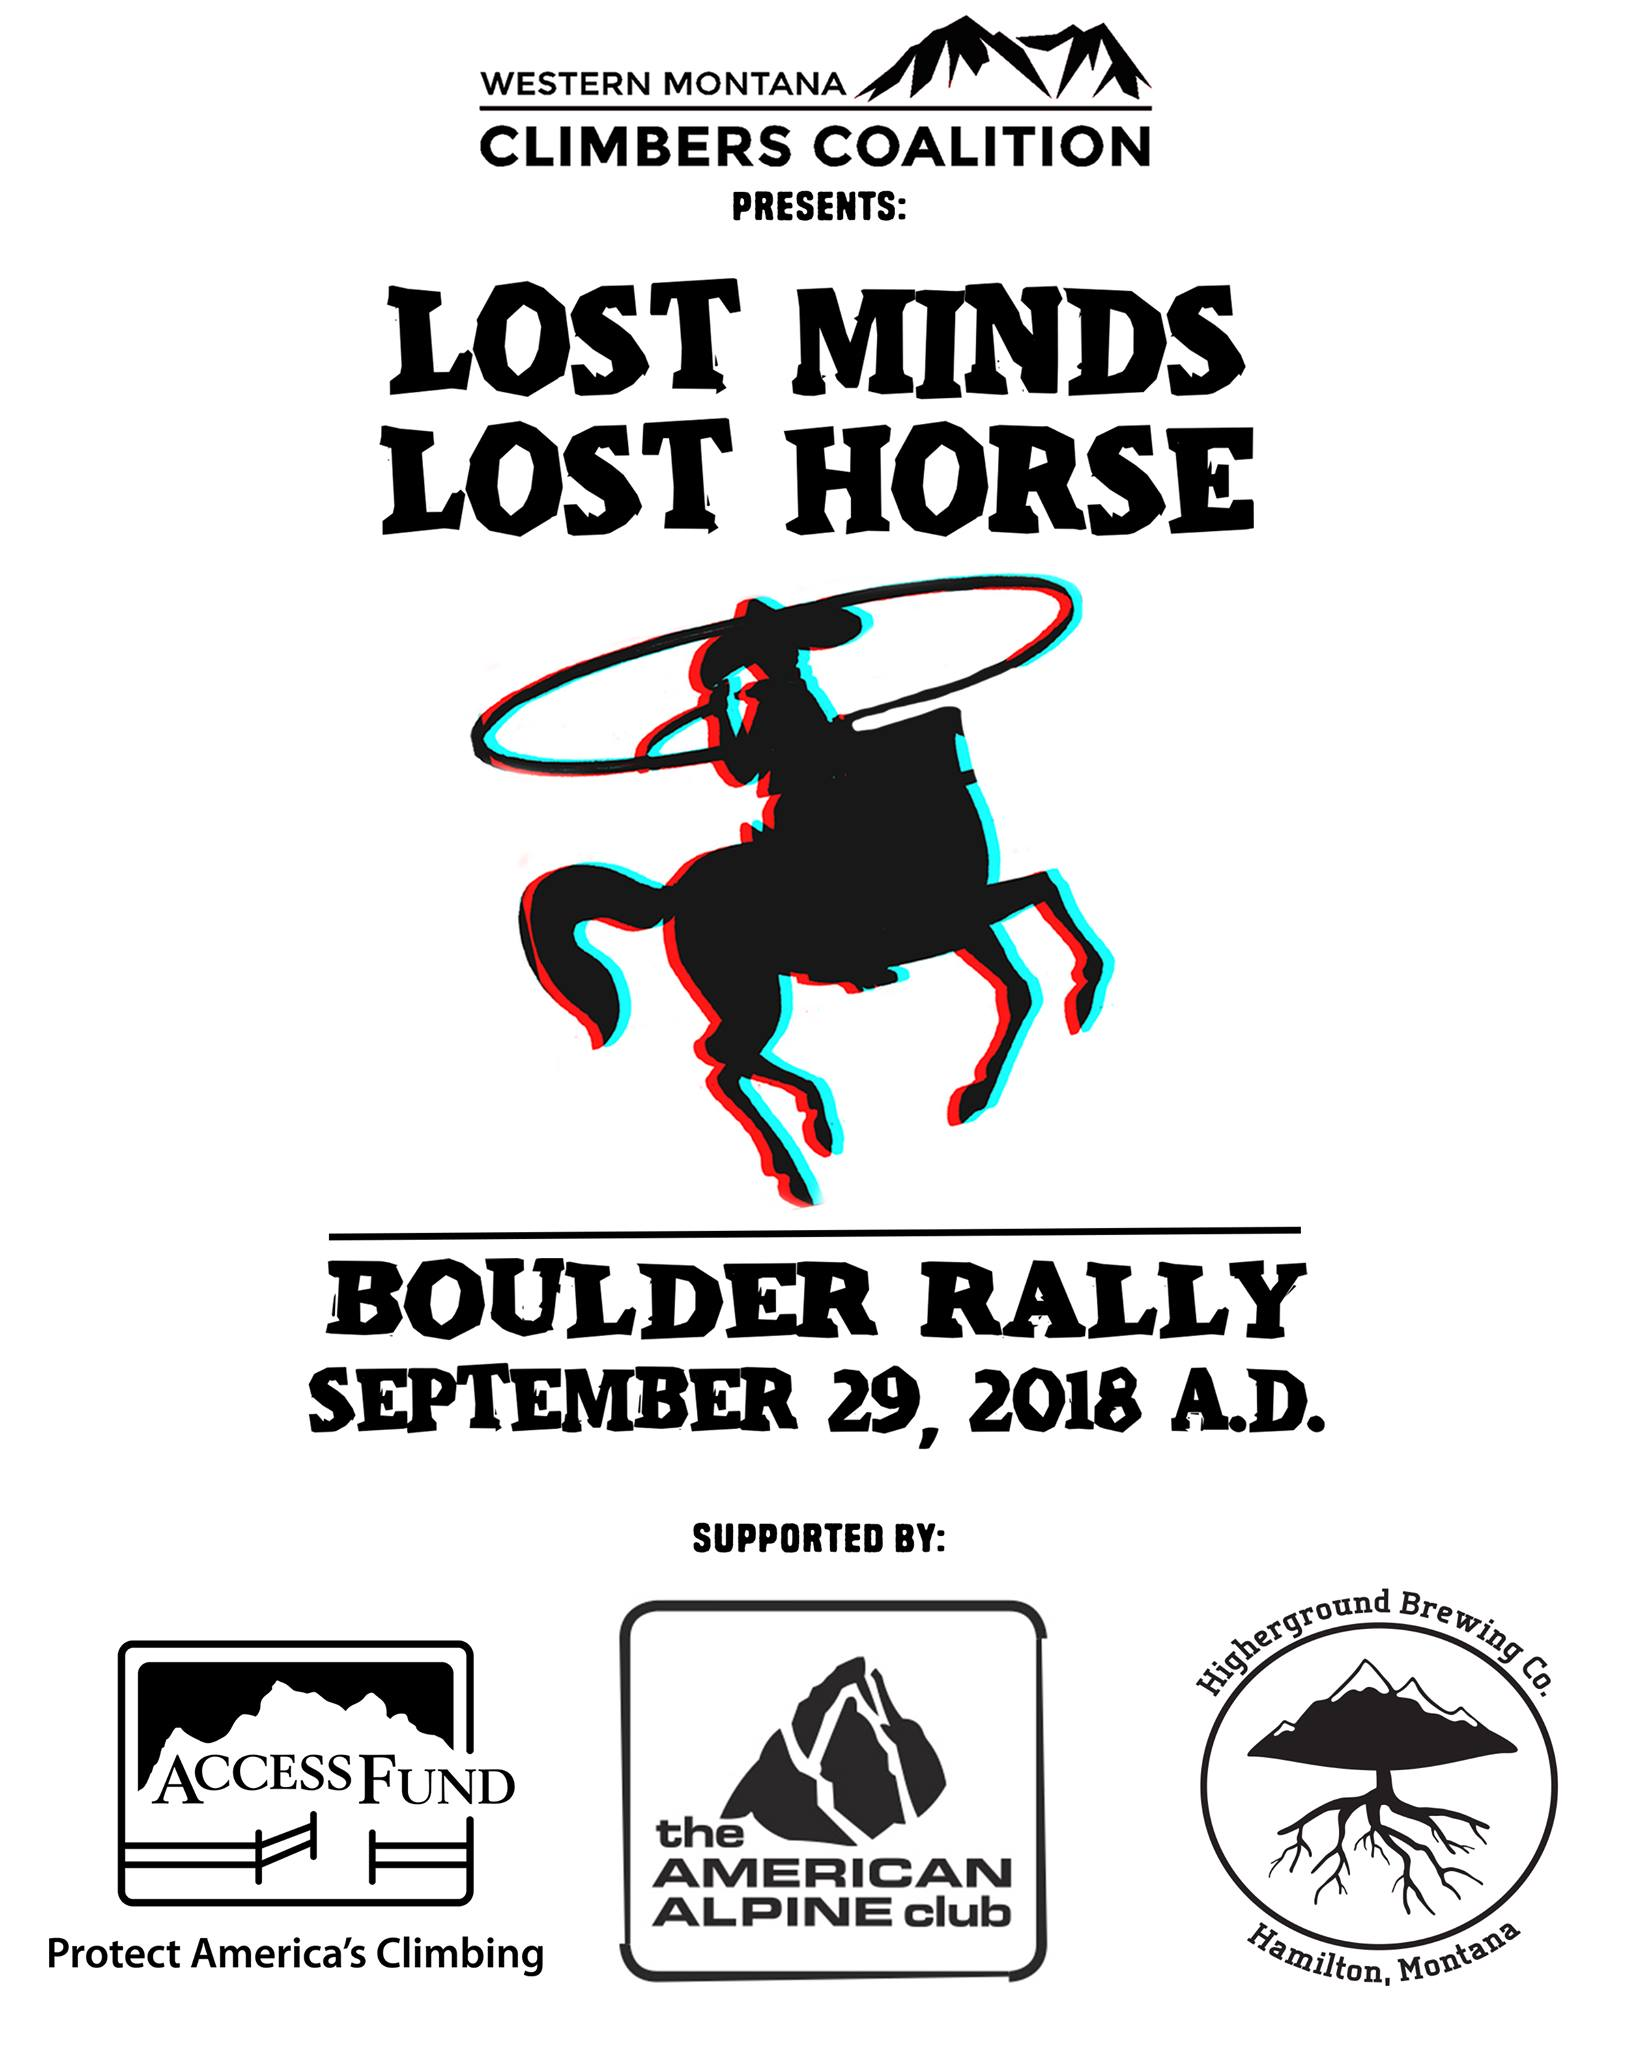 lost horse boulder rally.jpg